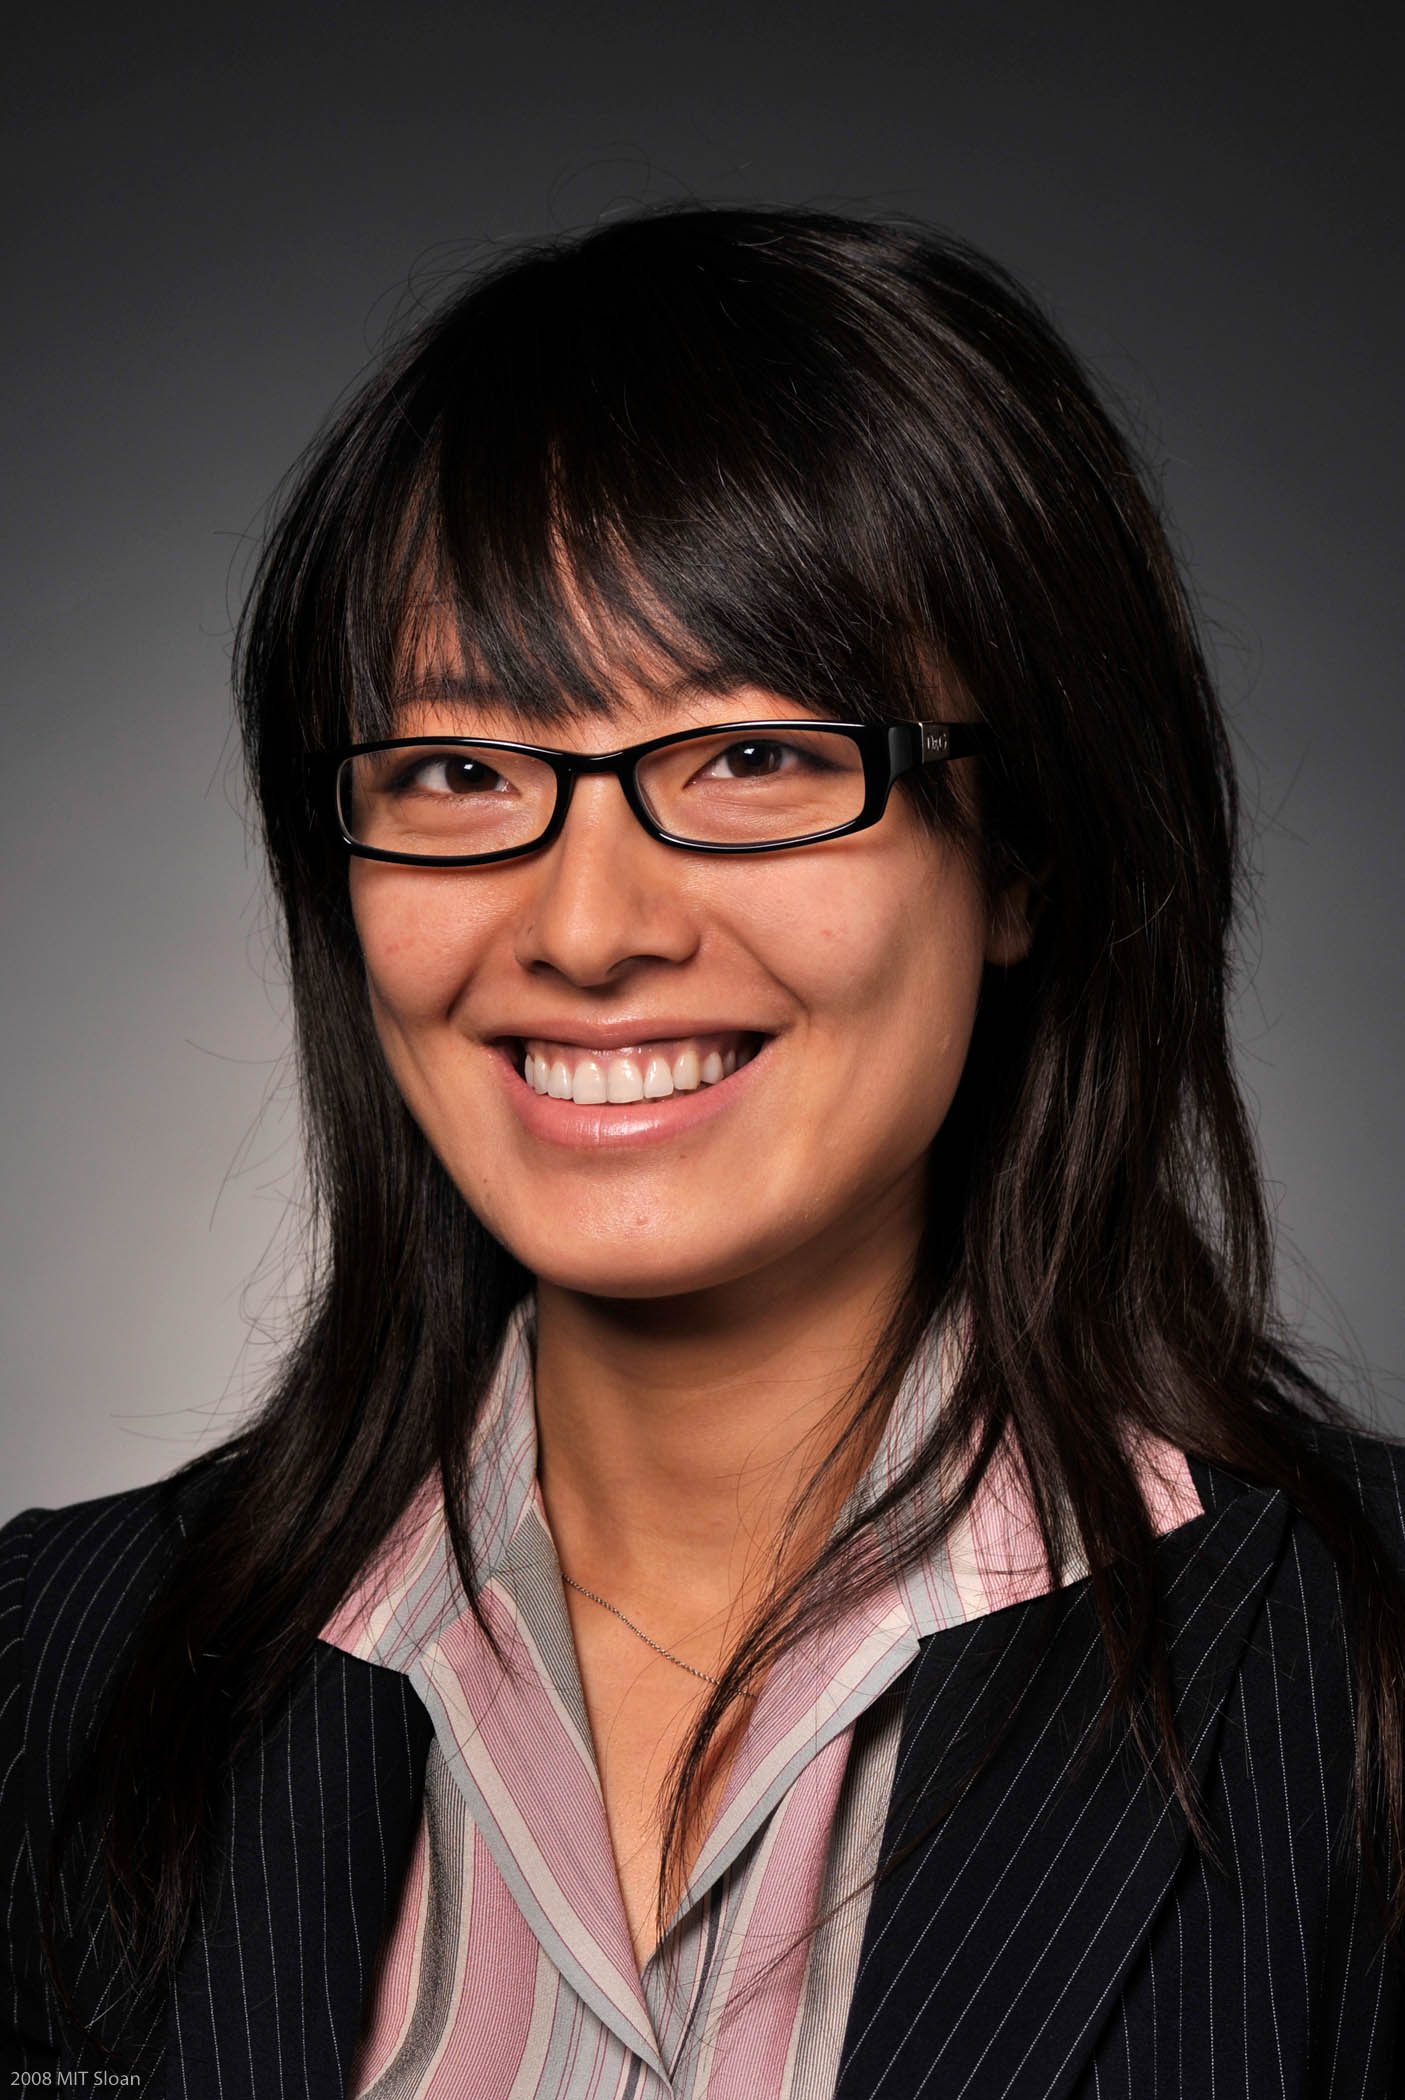 angela zhang cancer research paper title Kirby Institute   UNSW Sydney